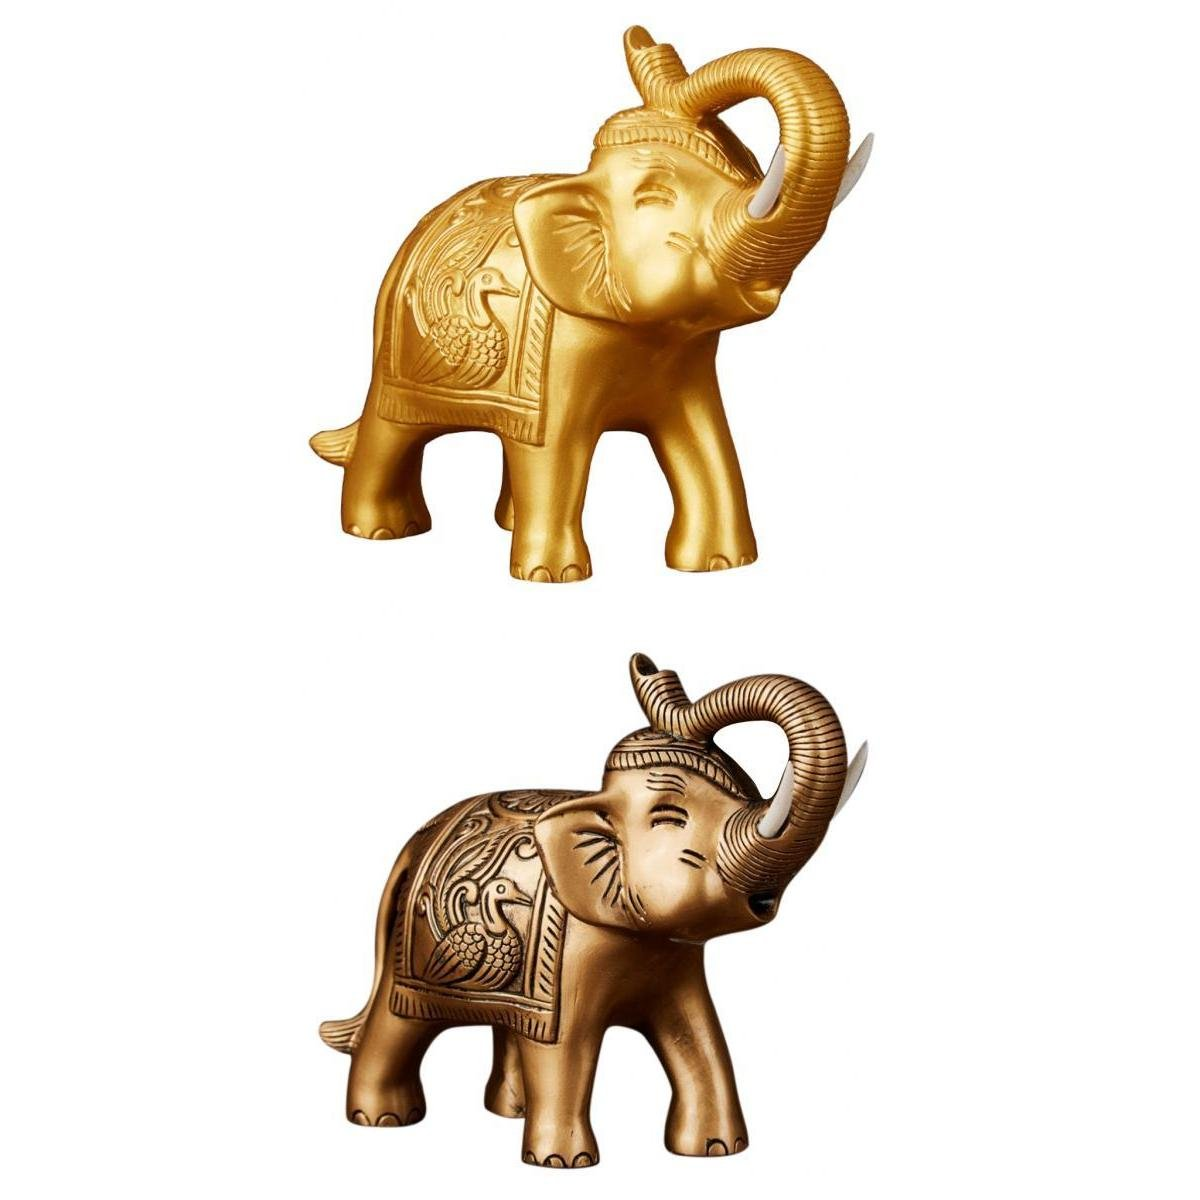 Antiques Chinese Feng Shui Chinese Lucky Car Decor Charm Money Elephant Figurine Gold